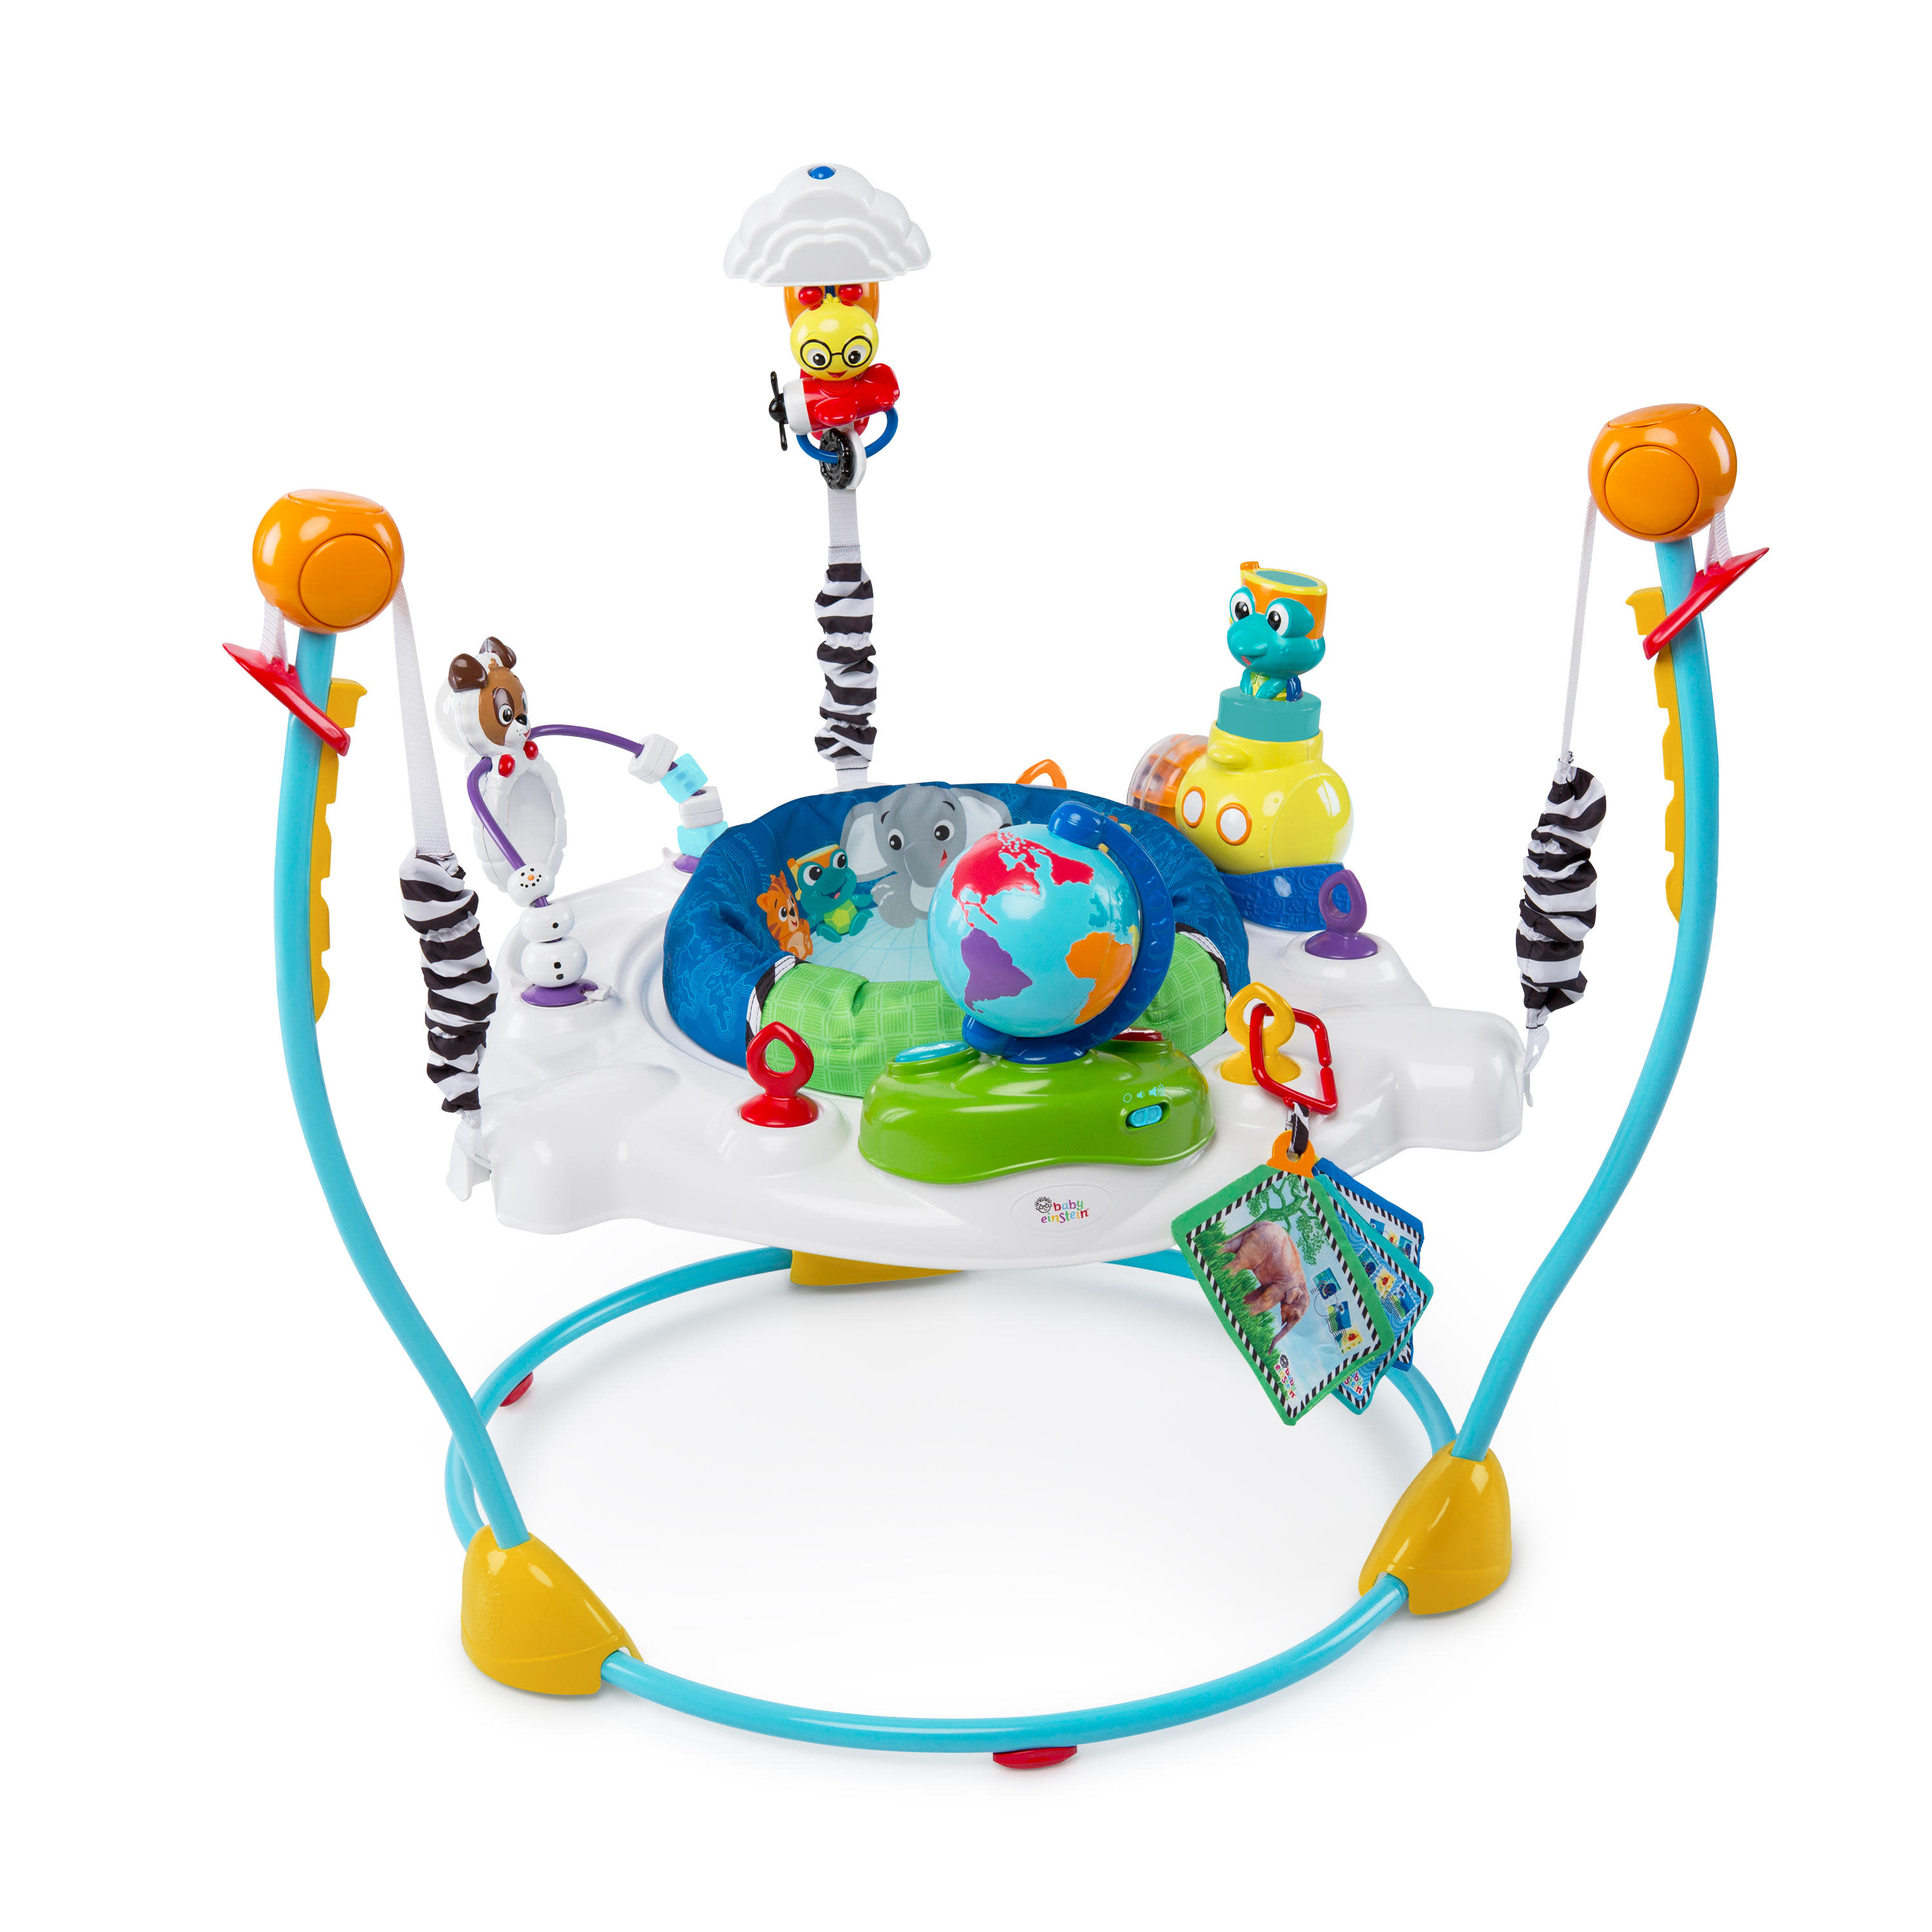 Baby Einstein Journey Of Discovery Jumper by Baby Einstein